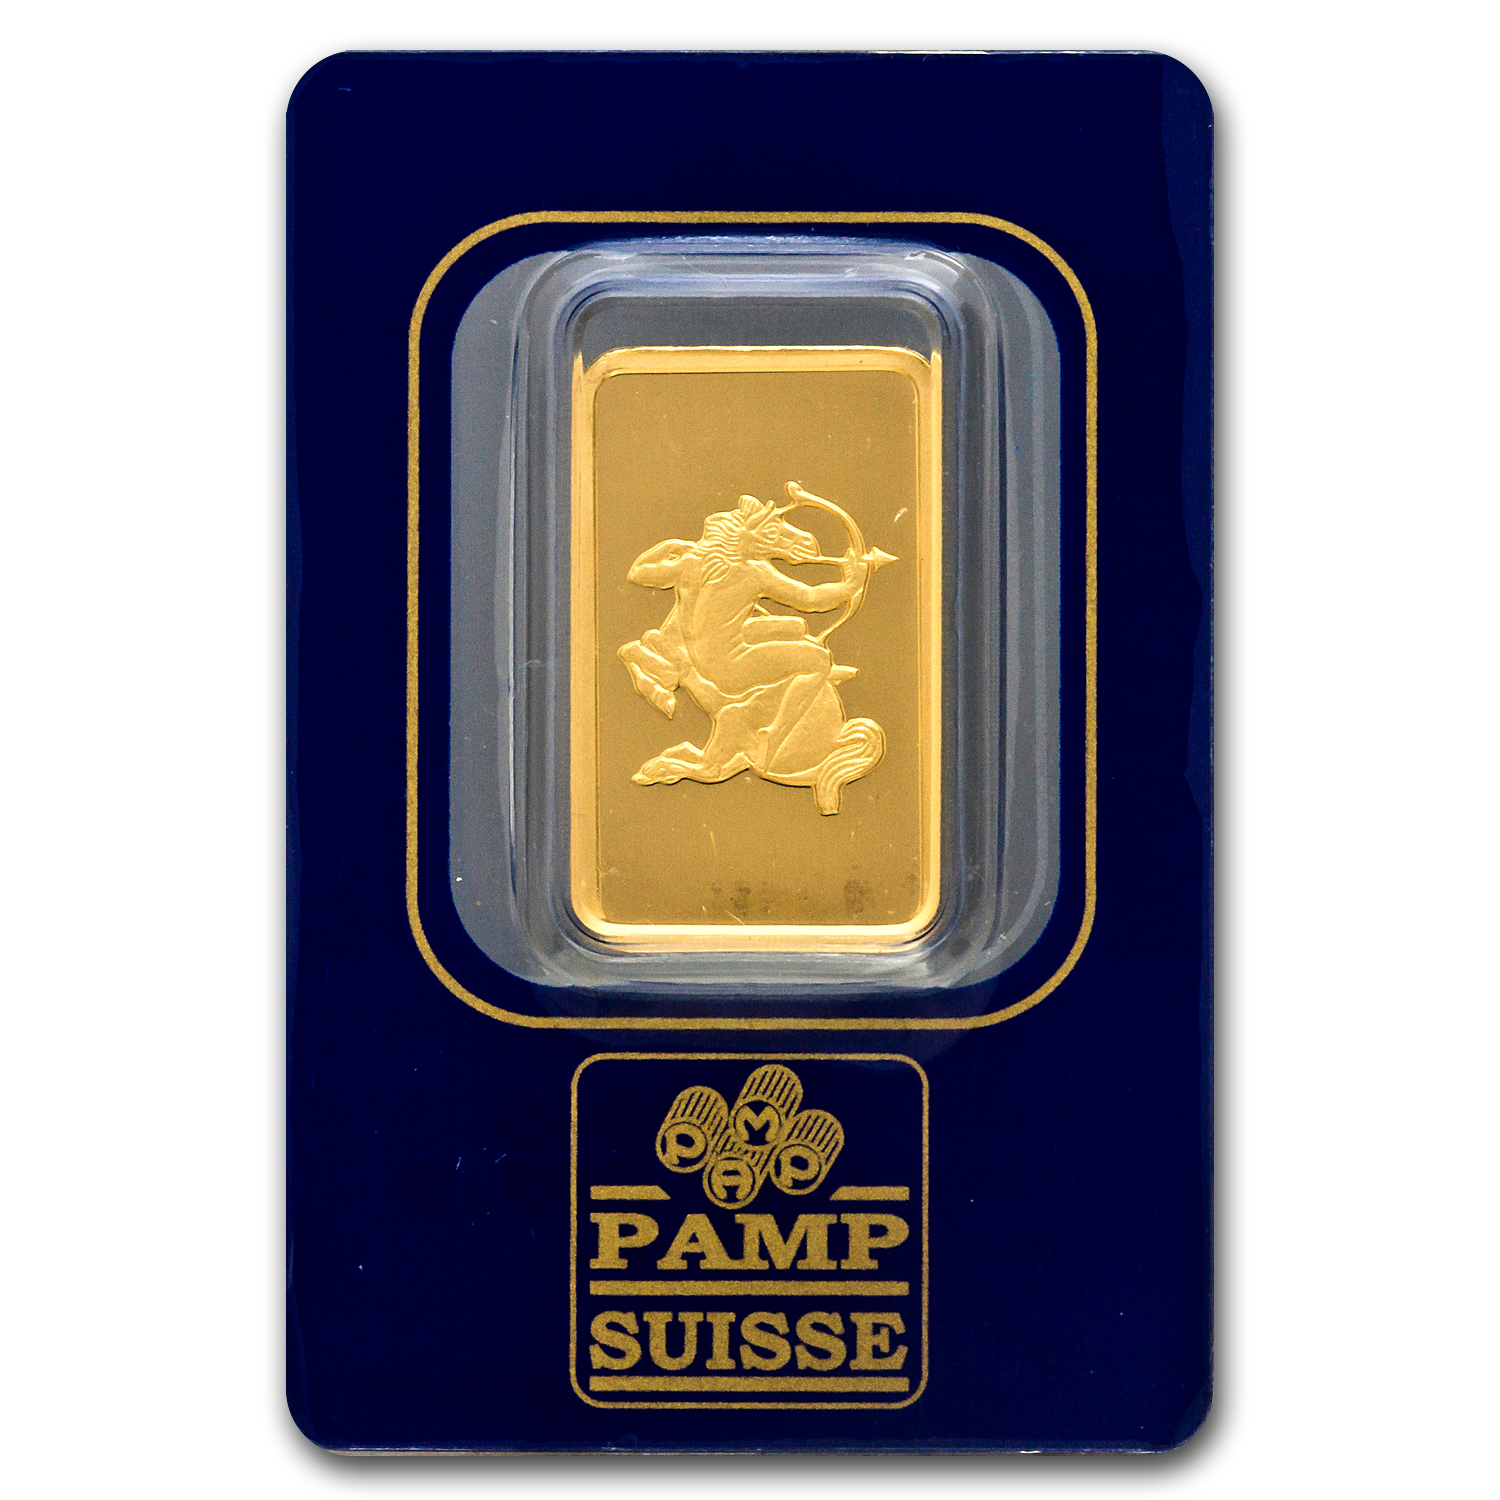 10 gram Gold Bar - Pamp Suisse Sagittarius the Archer (w/Assay)